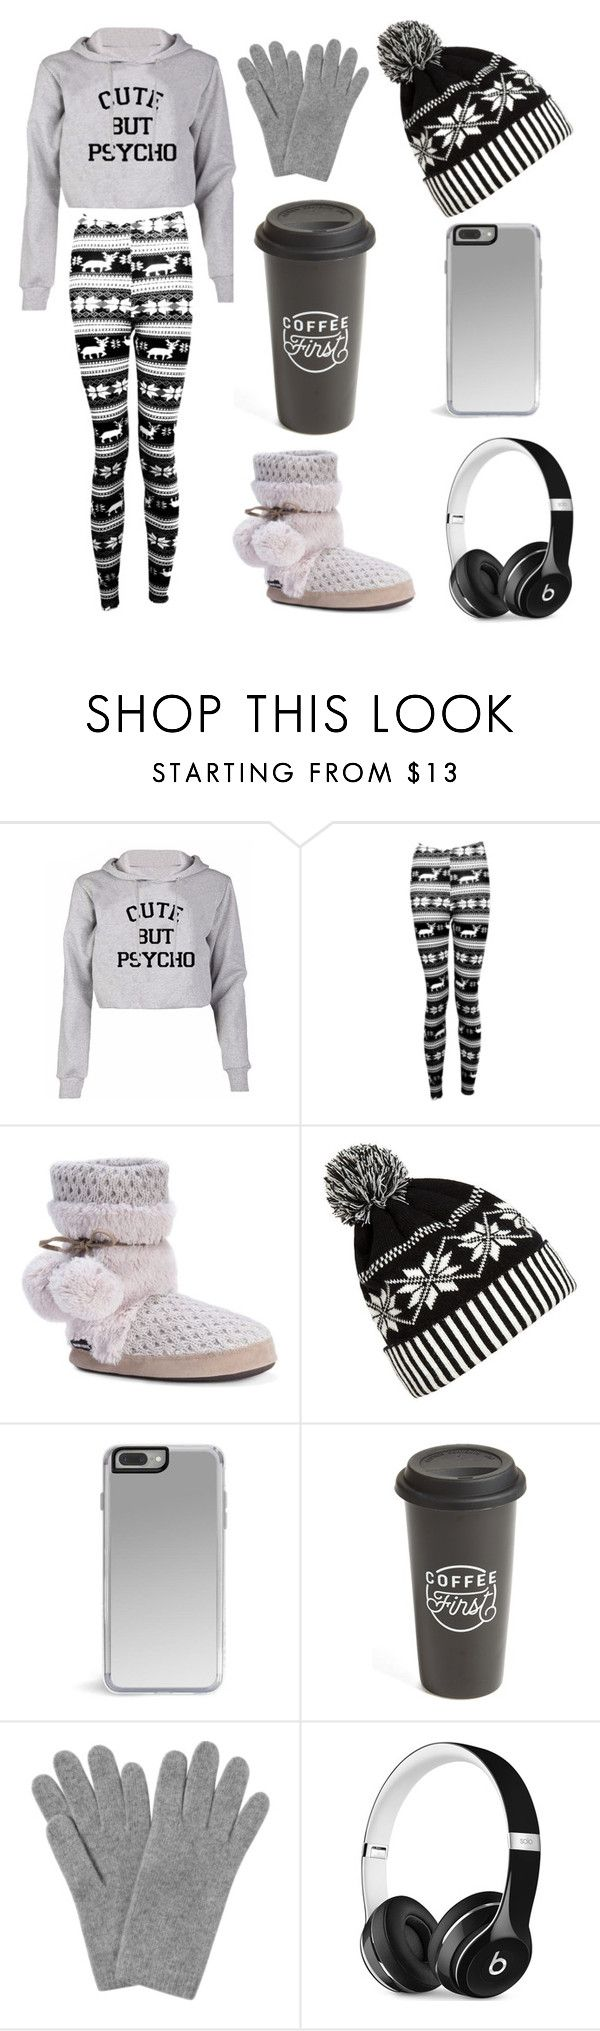 """movie time at home"" by maryfahmy ❤ liked on Polyvore featuring Boohoo, Muk Luks, WithChic, The Created Co., L.K.Bennett and Beats by Dr. Dre"